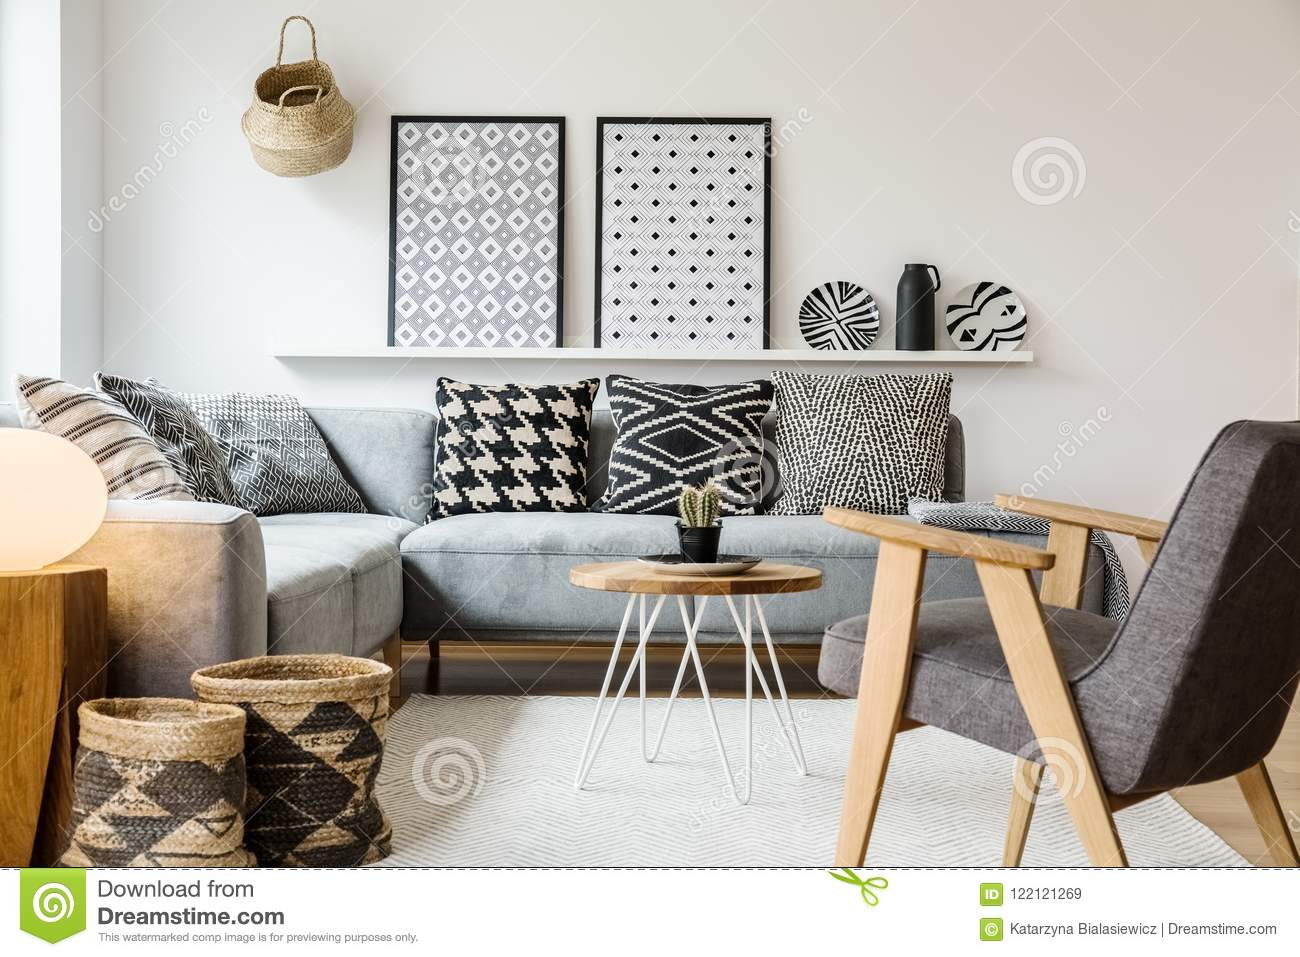 Swell Real Photo Of A Small Table Standing Between A Sofa With Gmtry Best Dining Table And Chair Ideas Images Gmtryco